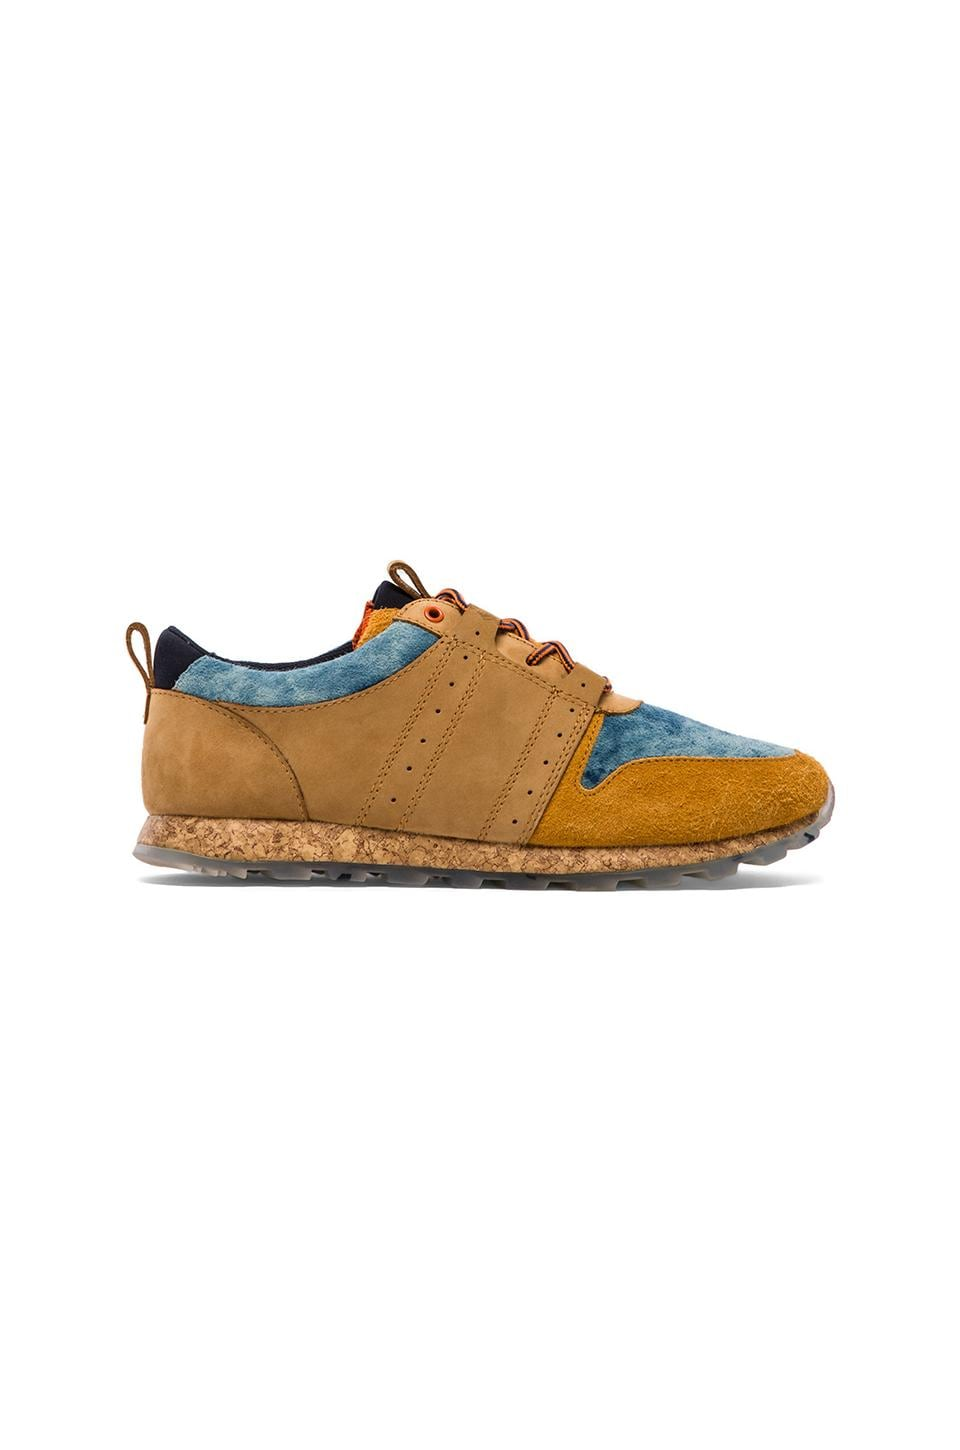 Clae Mills AXS Folk Technology x Clae in Cork Blue